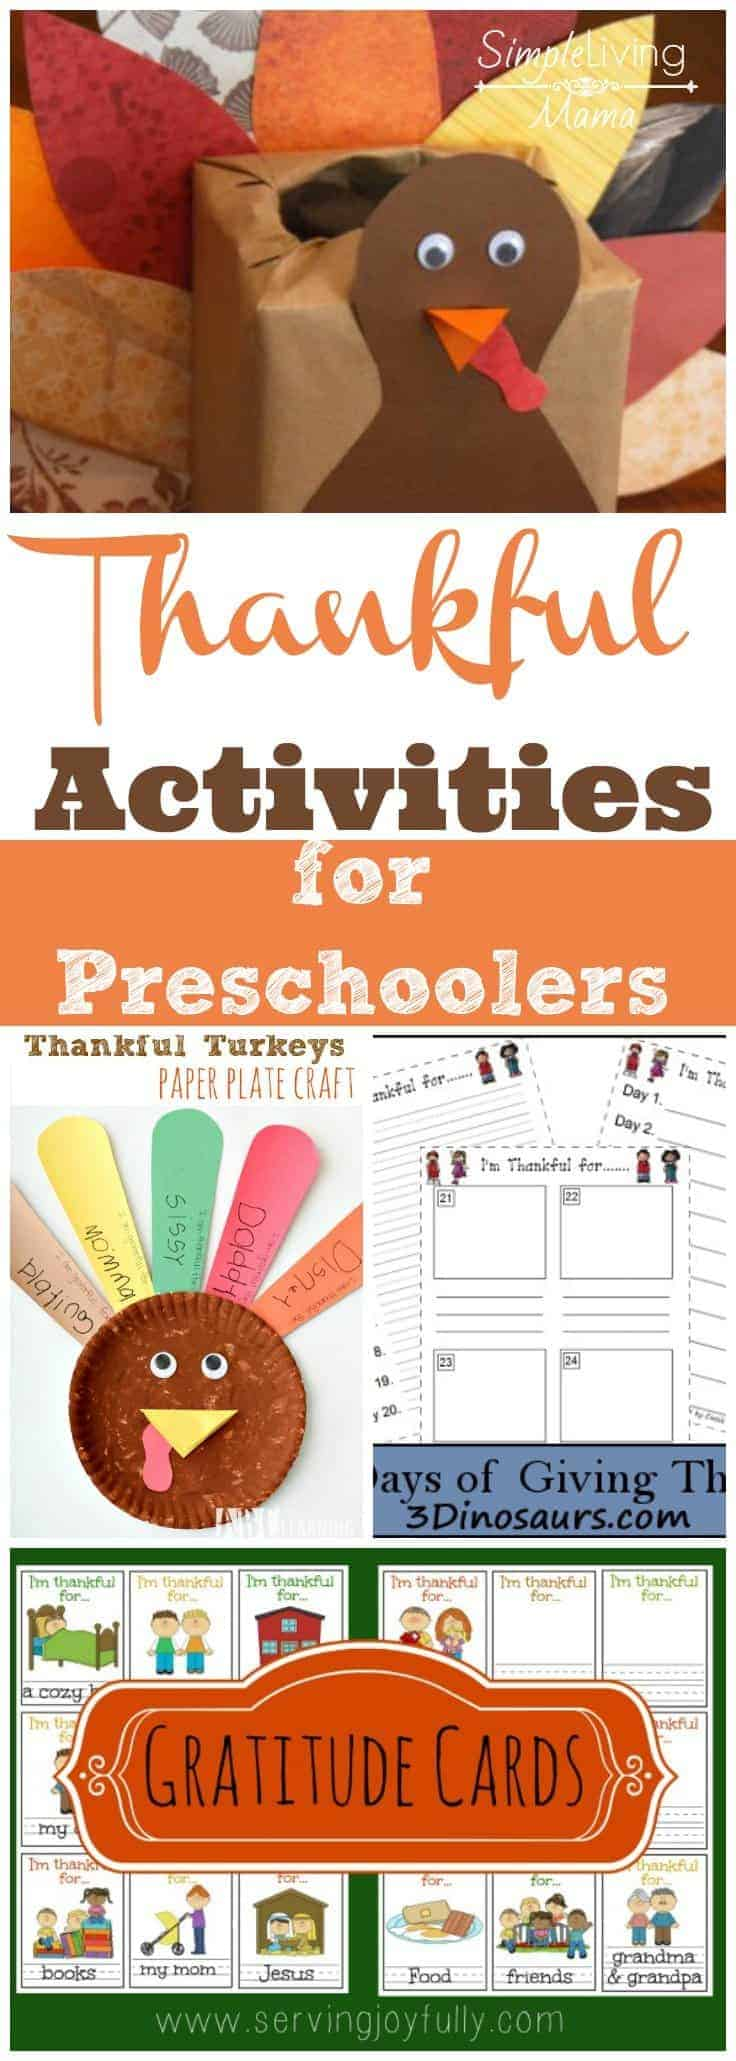 Thankful Activities for Preschoolers - A great way to help your preschooler express thankfulness!